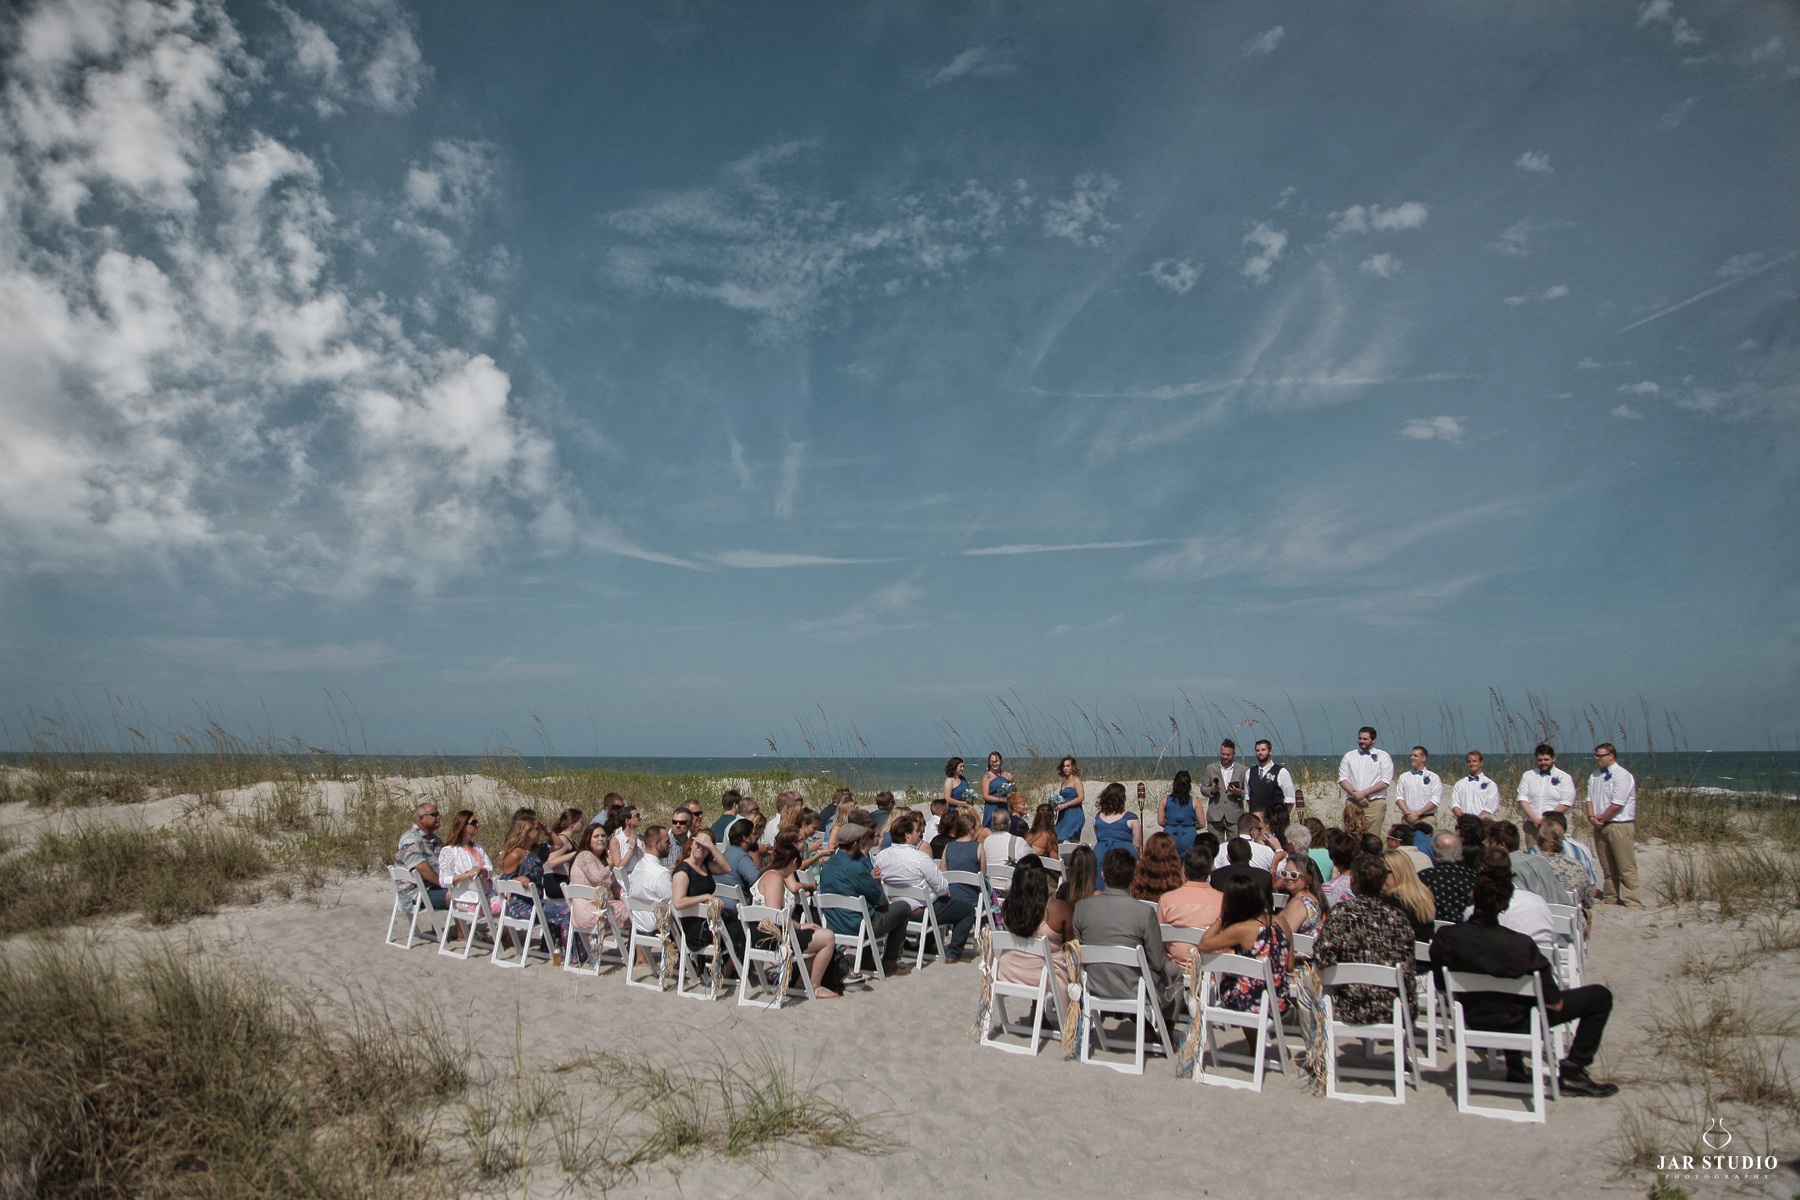 20-outdoor-beach-wedding-central-florida-photographer.JPG